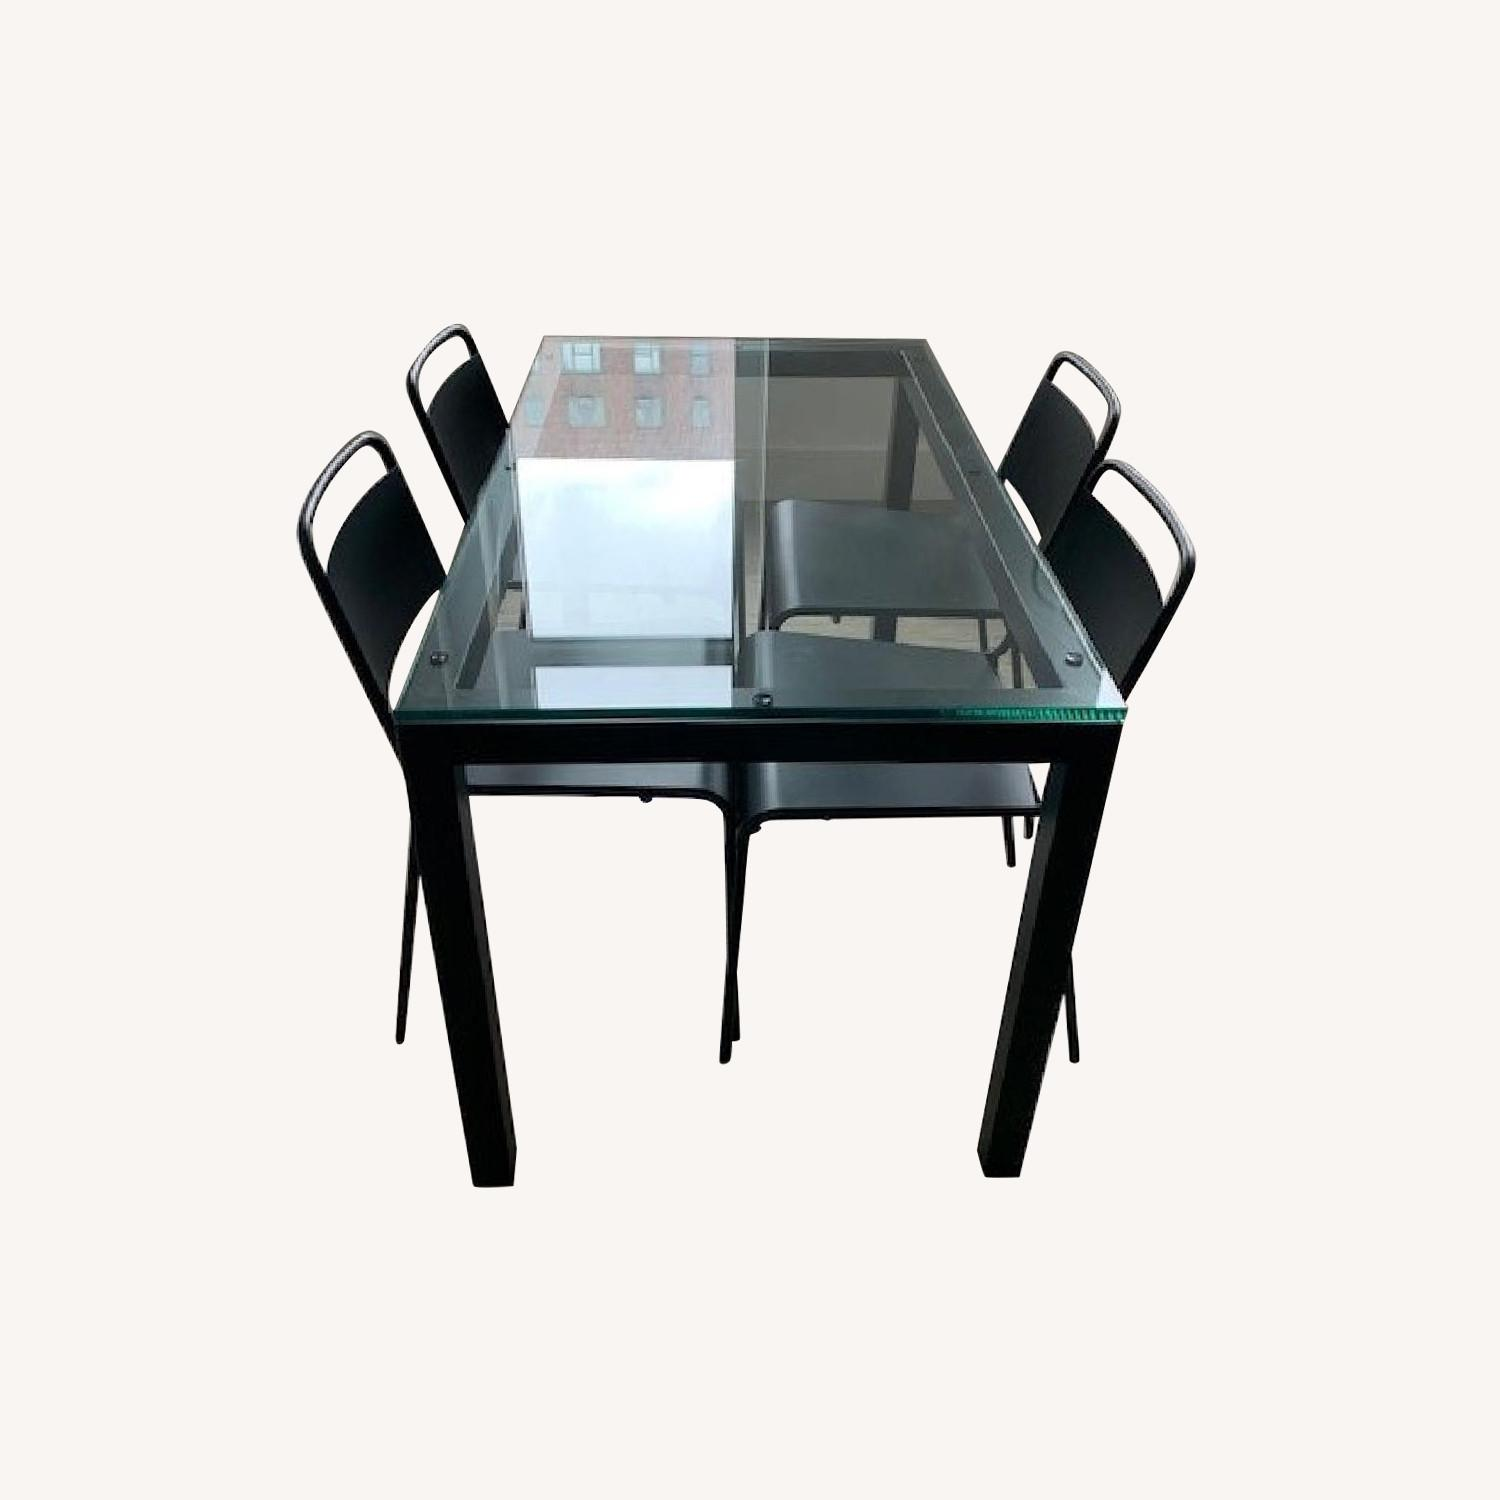 Crate & Barrel Glass Dining Table w/ 4 Chairs - image-0